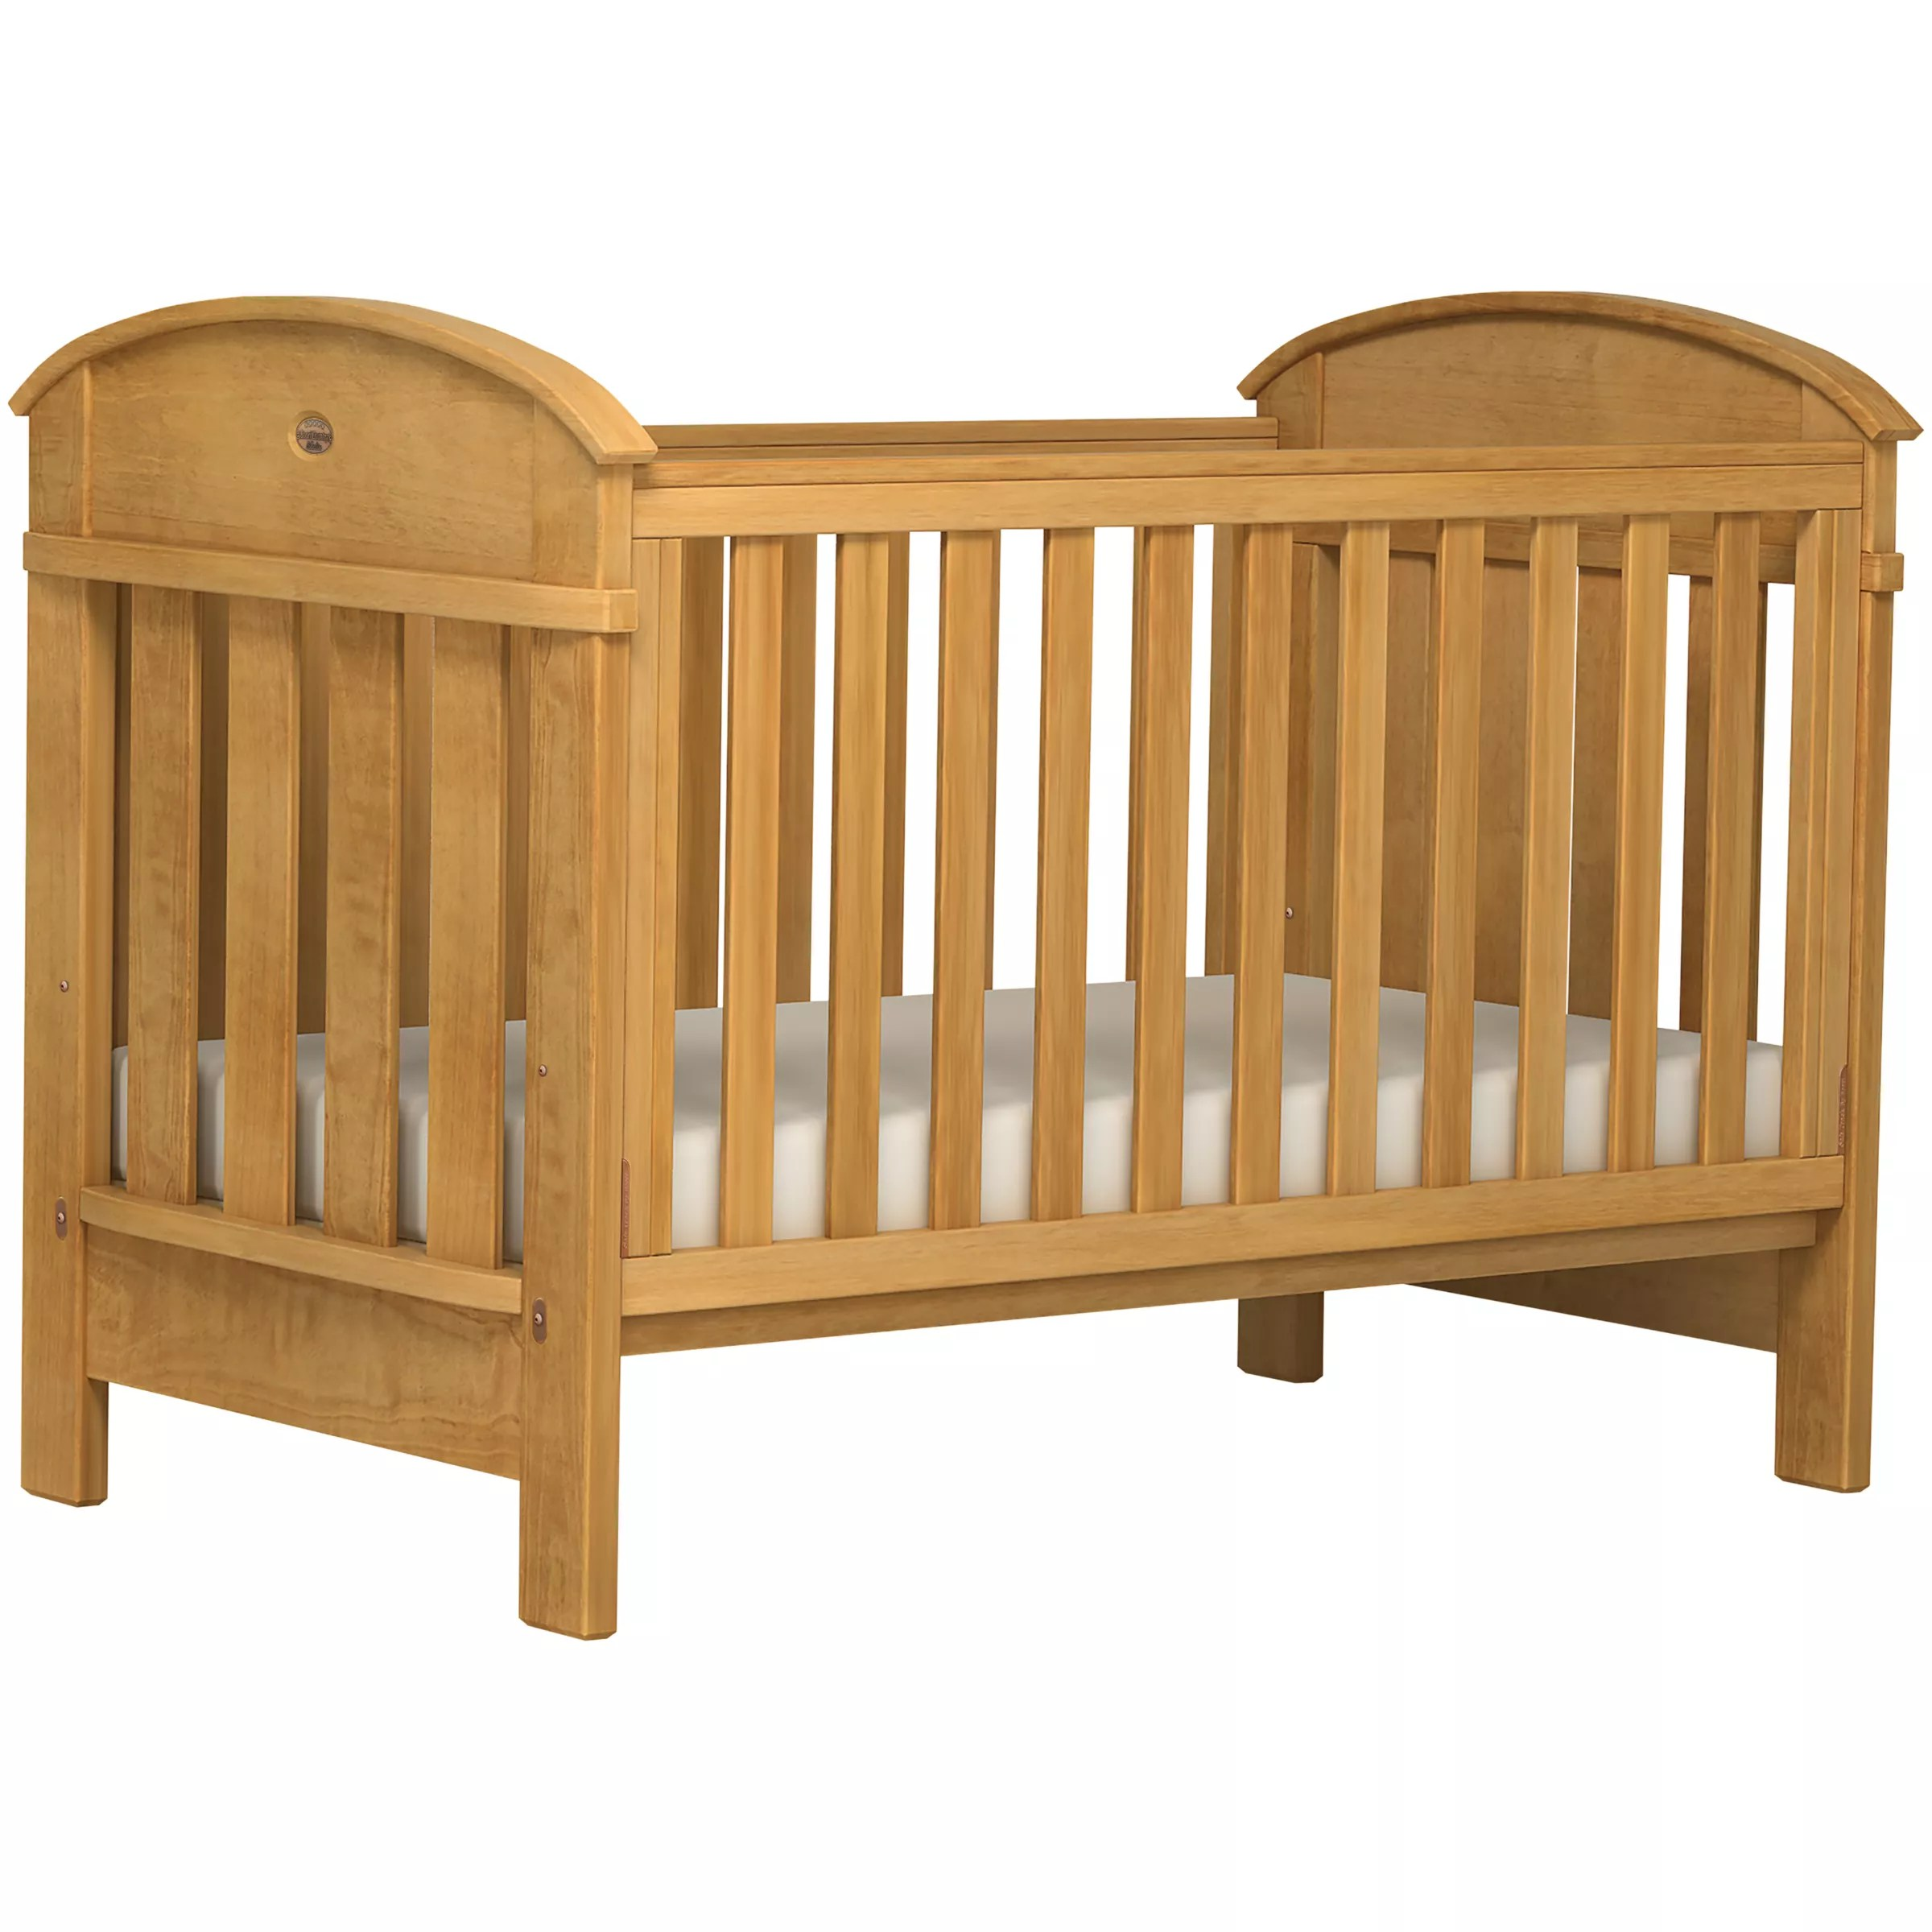 boori country collection madison 3 in 1 cot bed sofa 96 table cotbed heritage teak at john lewis partners buyboori online johnlewis com